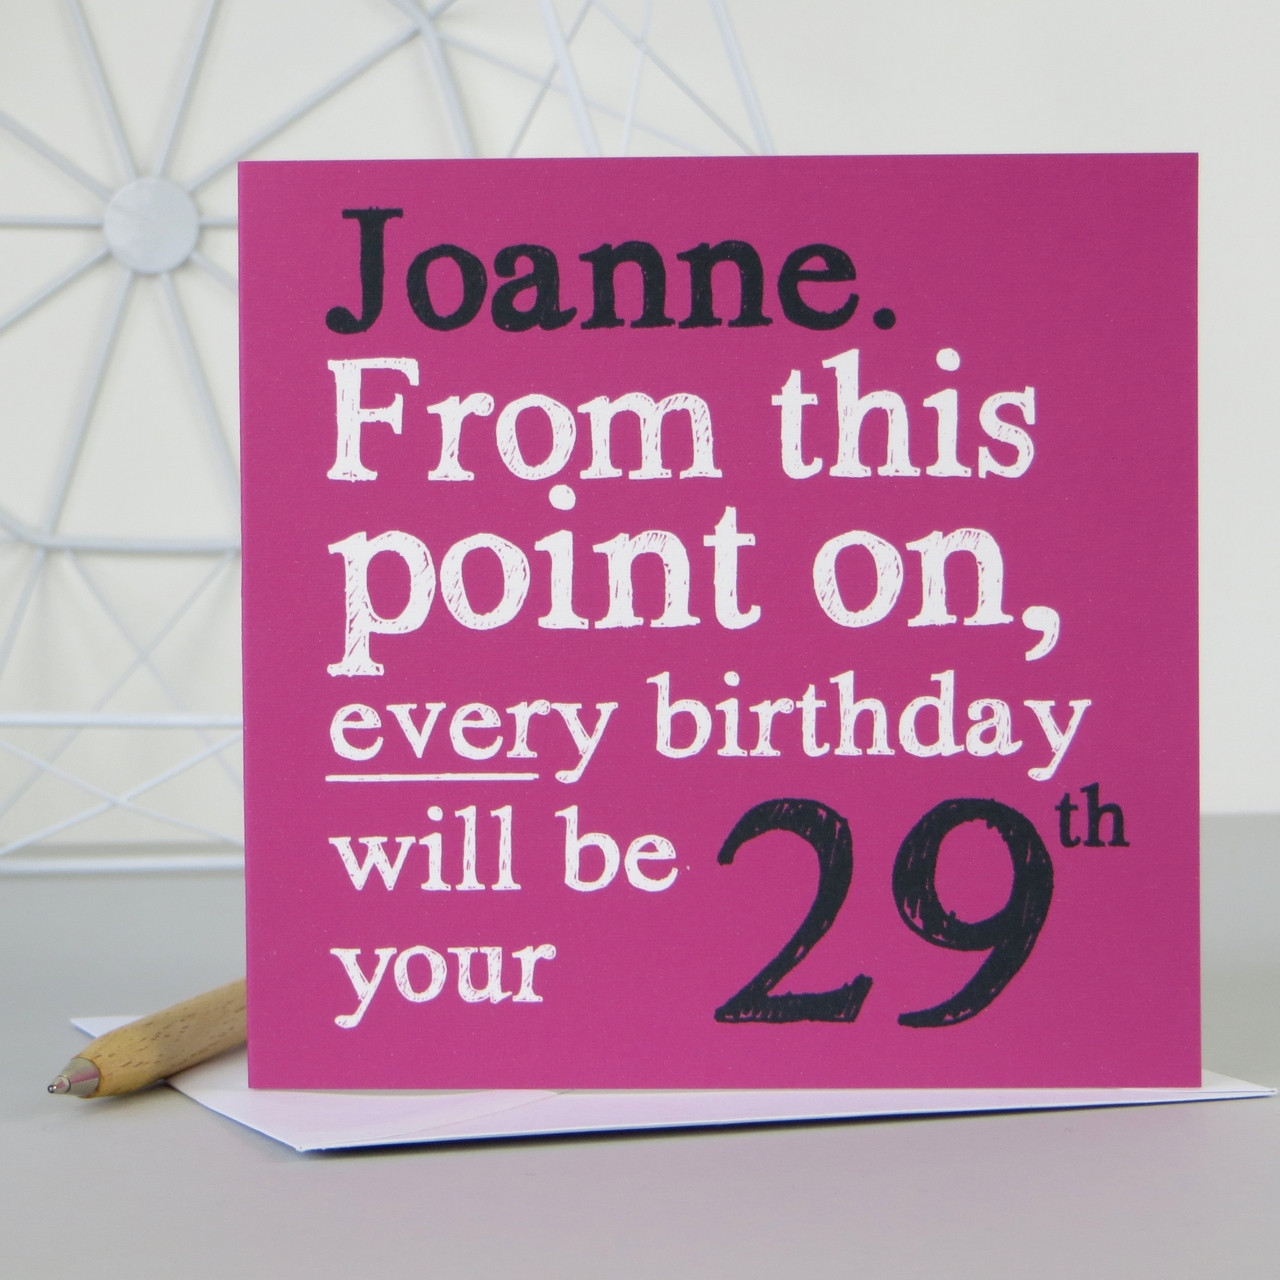 Personalised funny 29th 39th 49th birthday card personalised funny 29th 39th 49th birthday card pink kristyandbryce Images